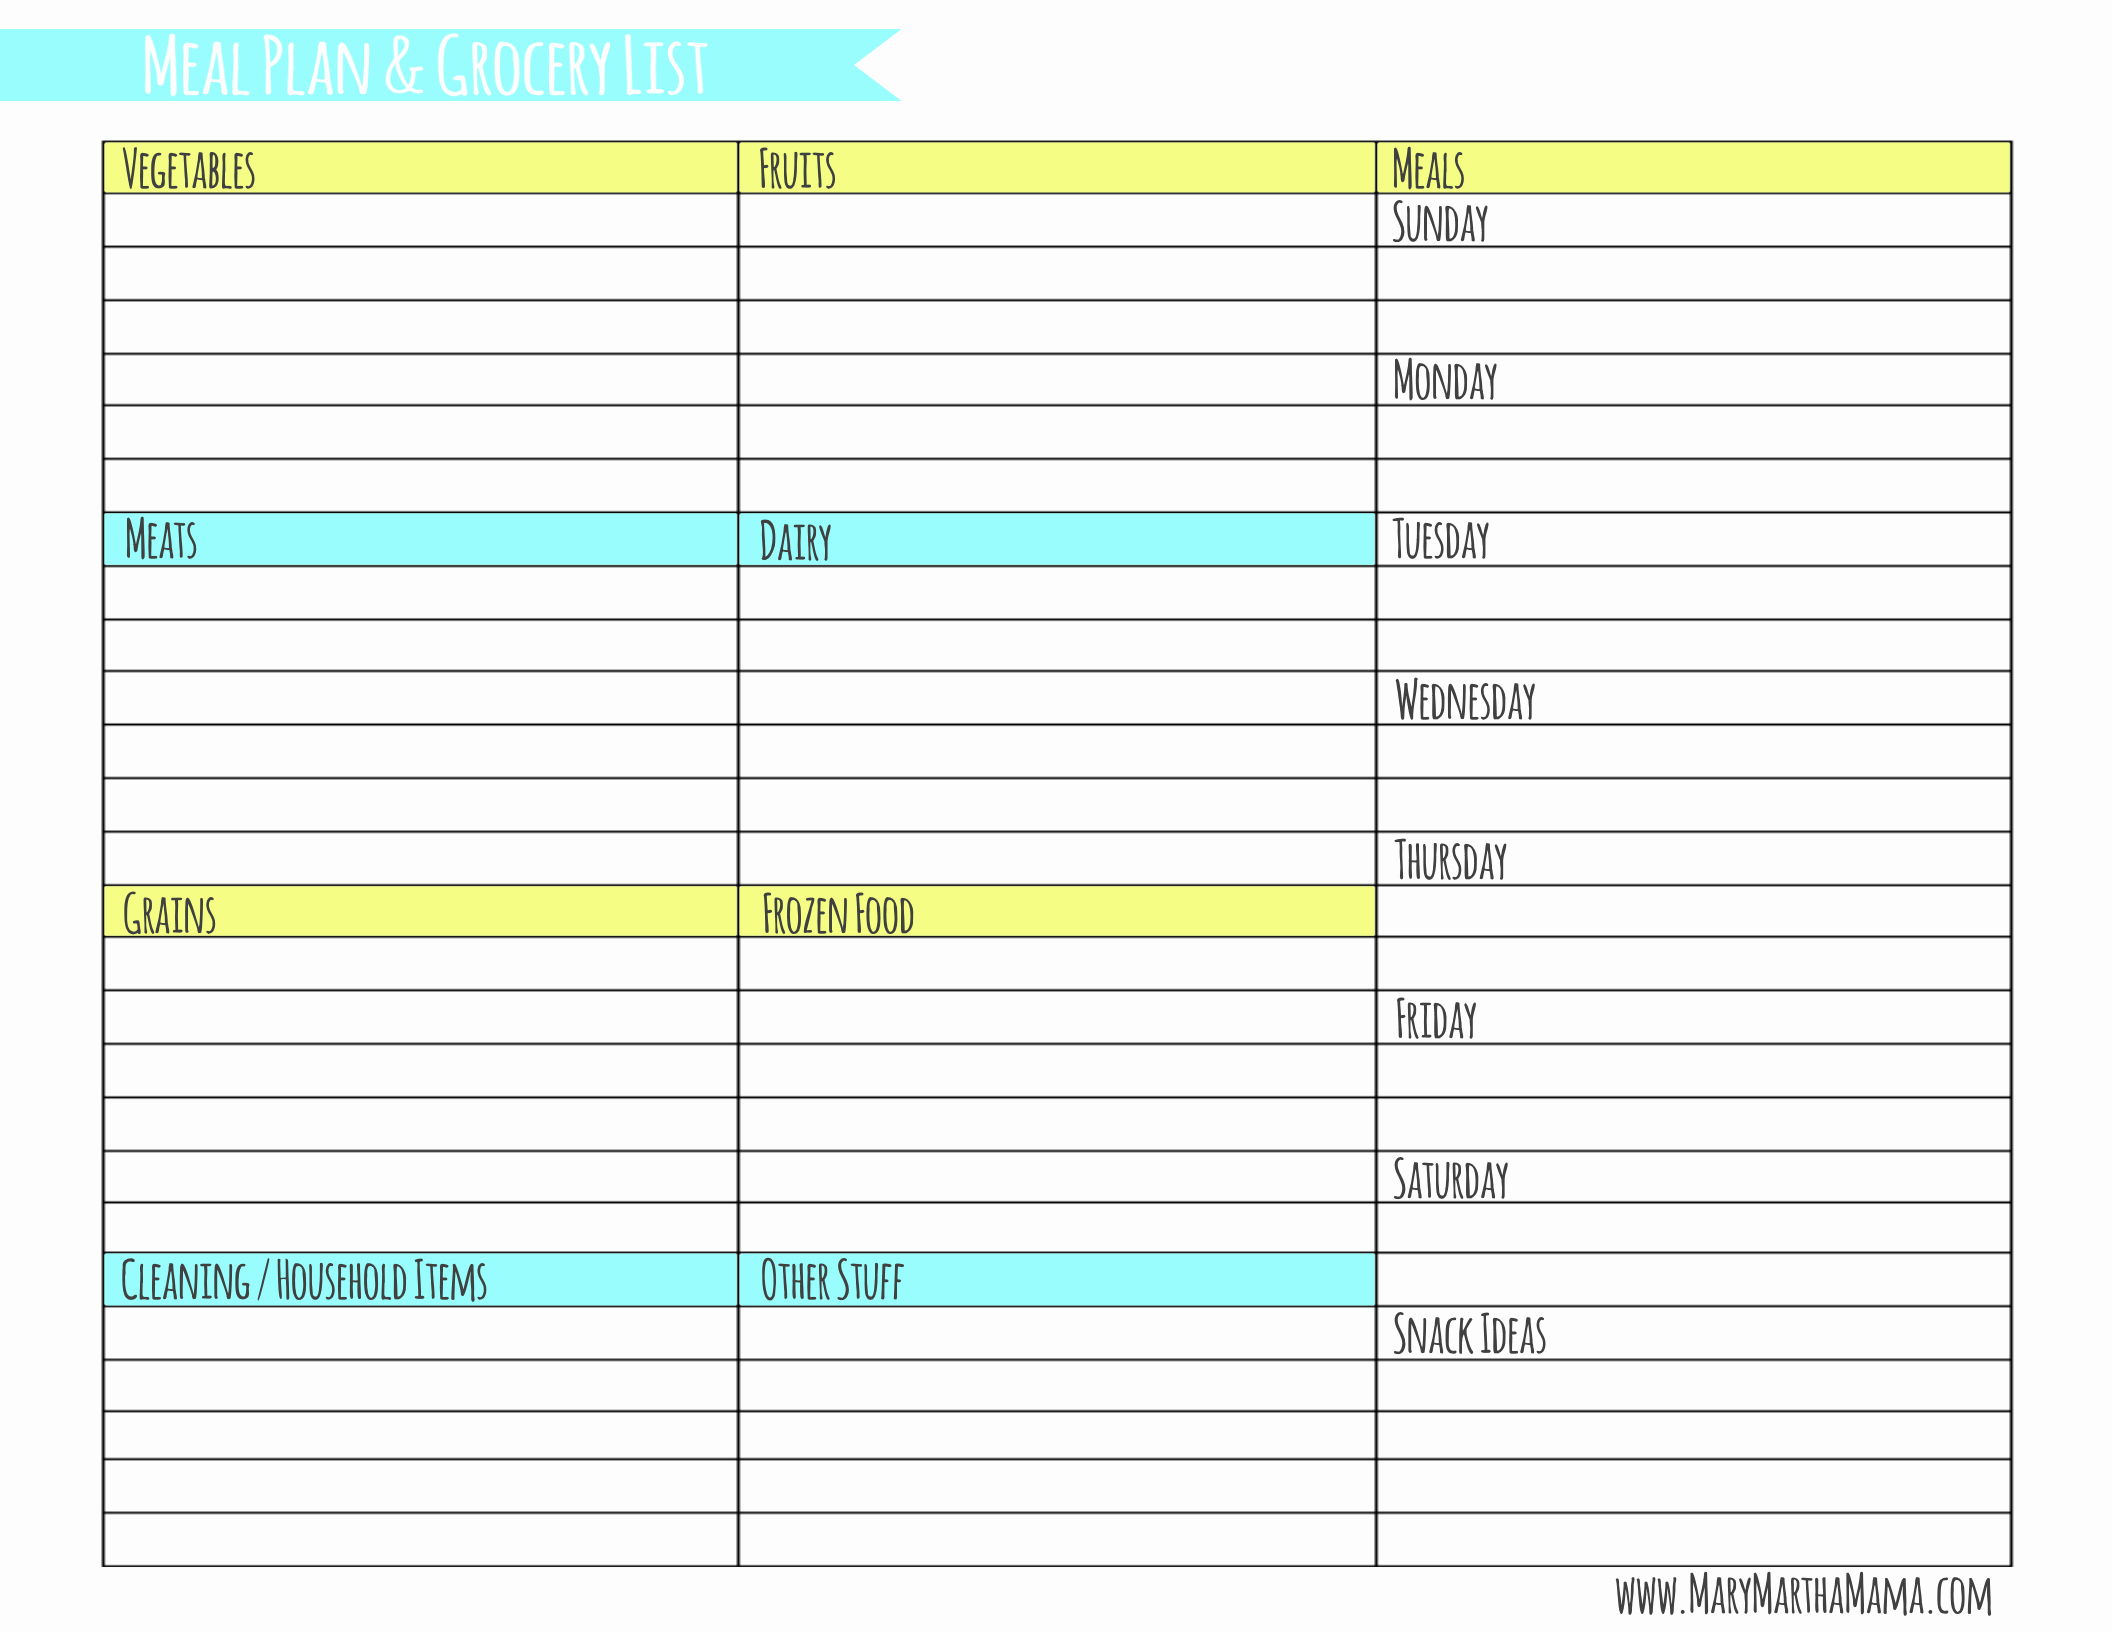 Weekly Meal Plan Template Fresh Weekly Meal Planner Template with Grocery List – Mary